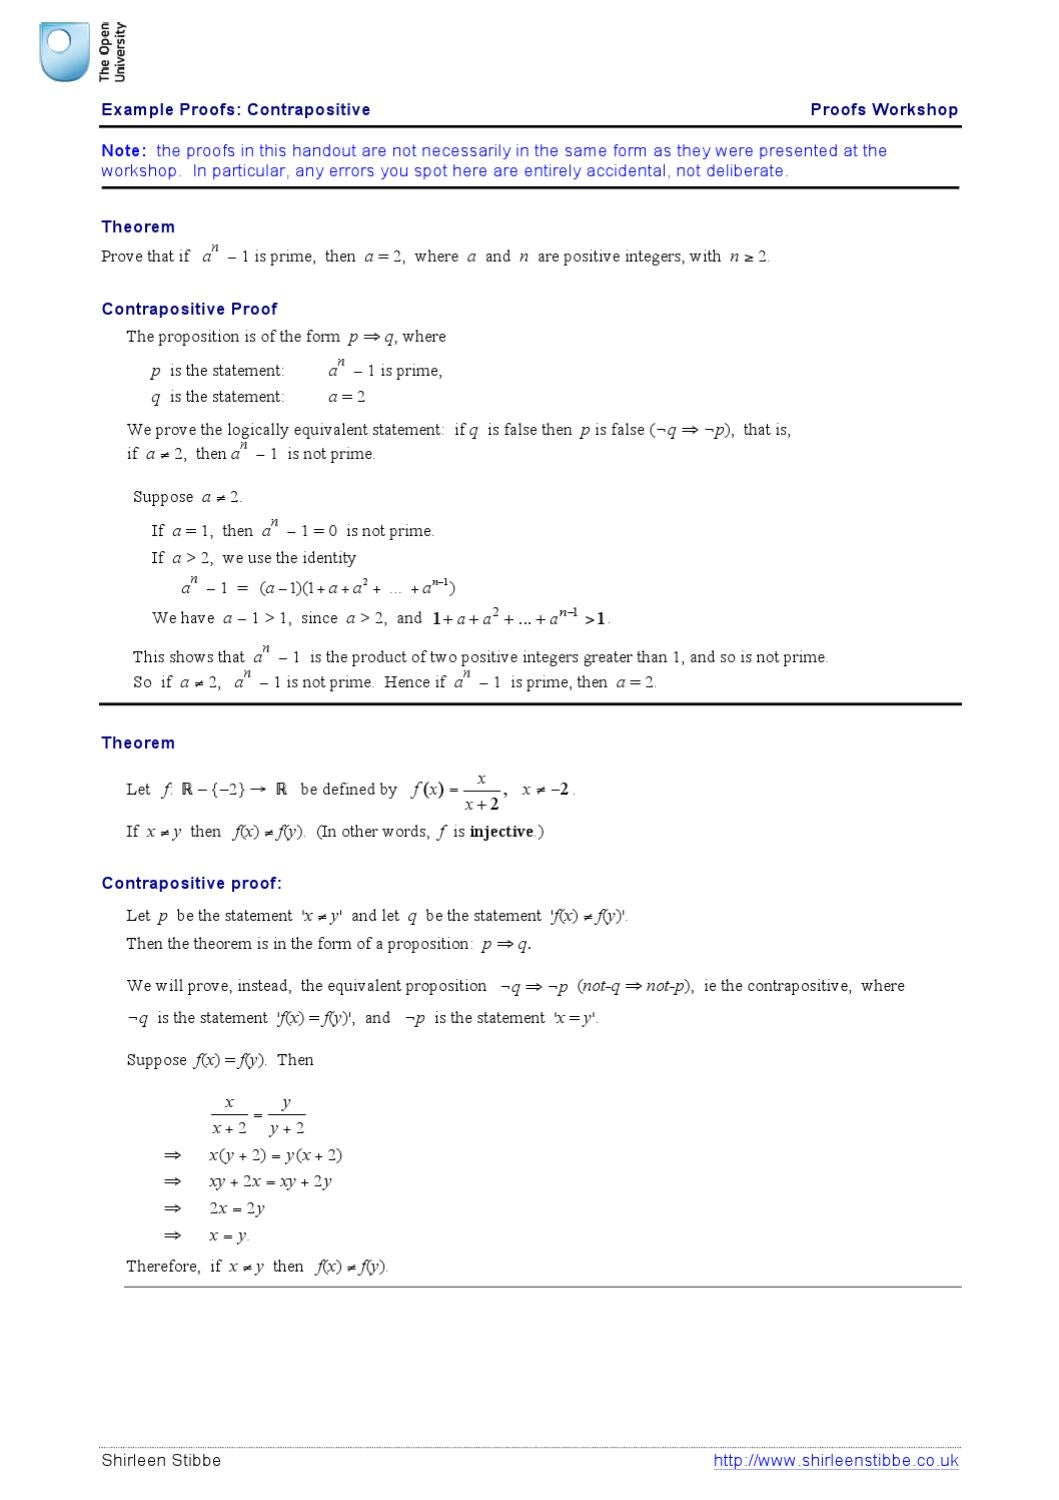 Example Proofs Contrapositive By Shirleen Stibbe Issuu